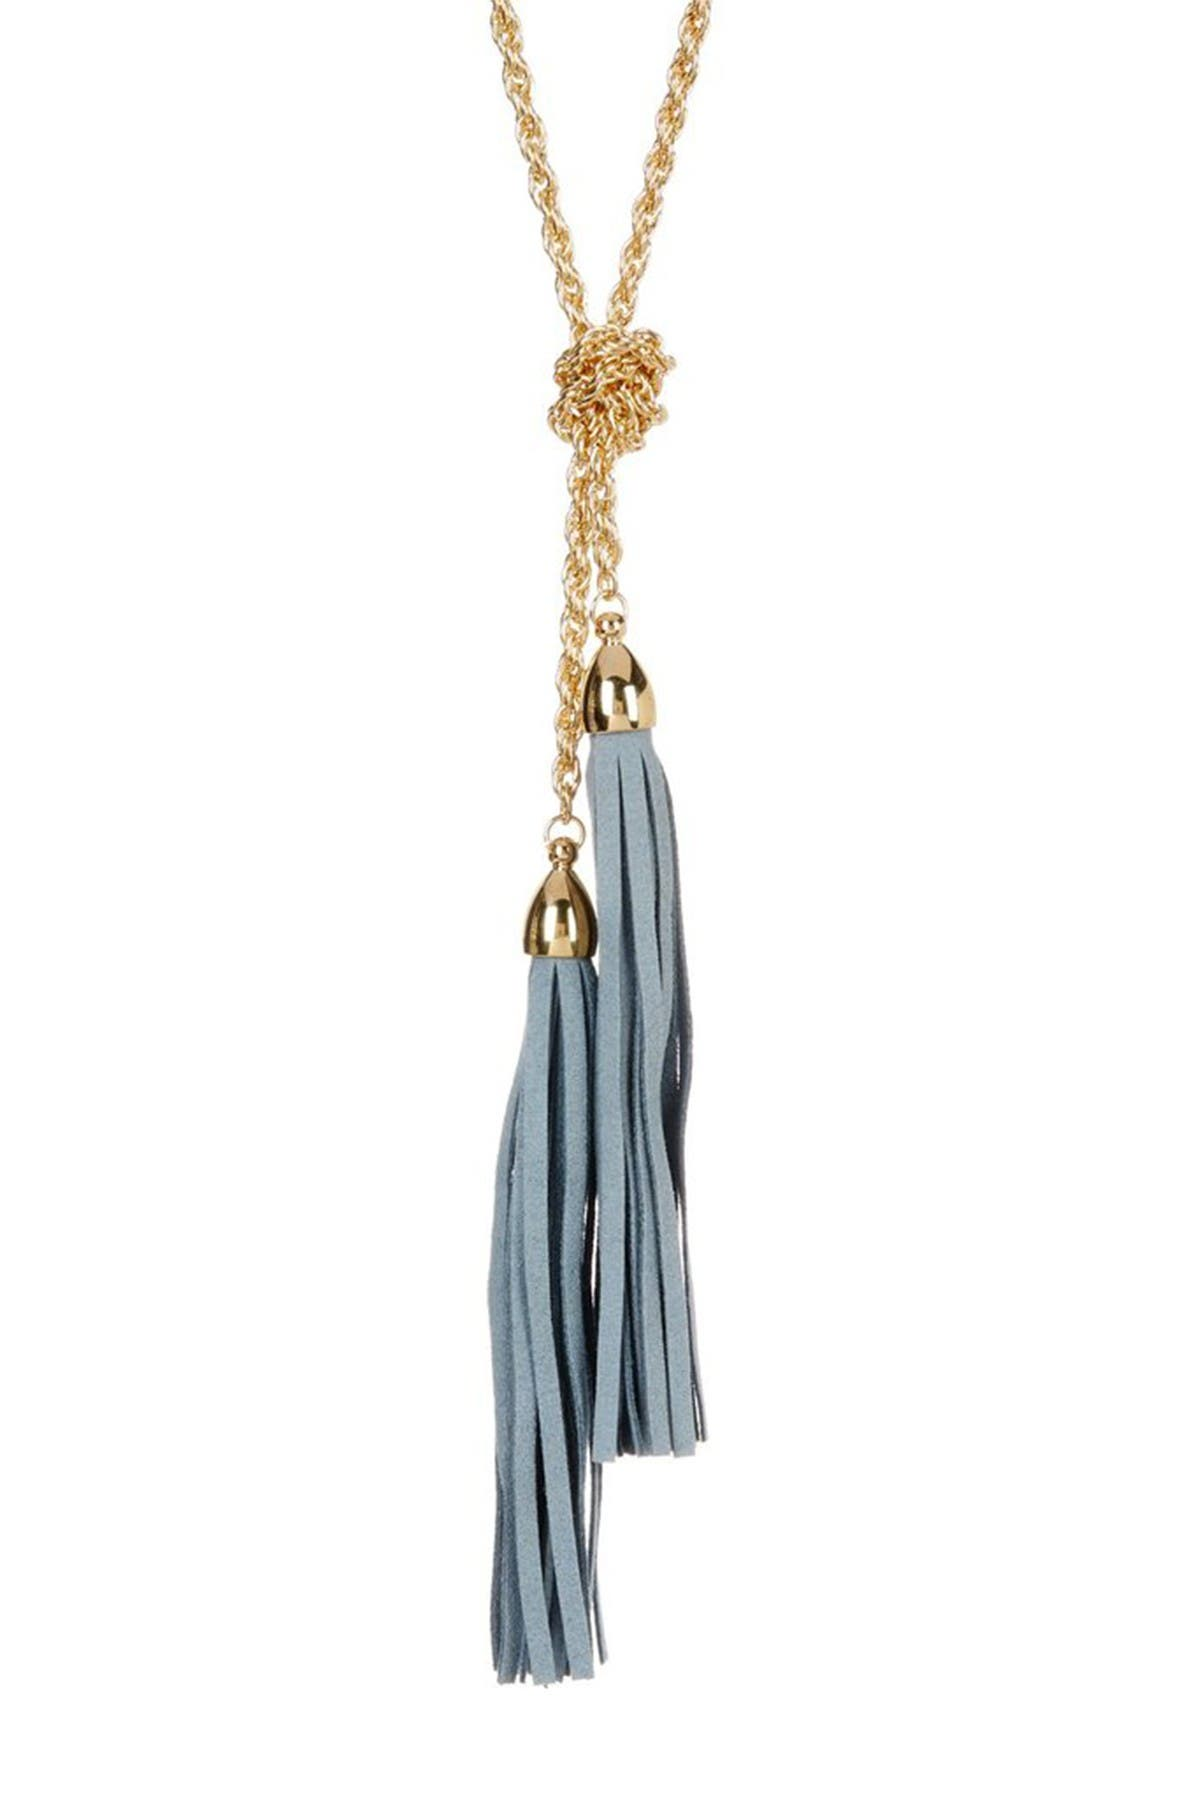 Image of Sterling Forever 14K Gold Plated Grey Suede Tassel Lariat Necklace